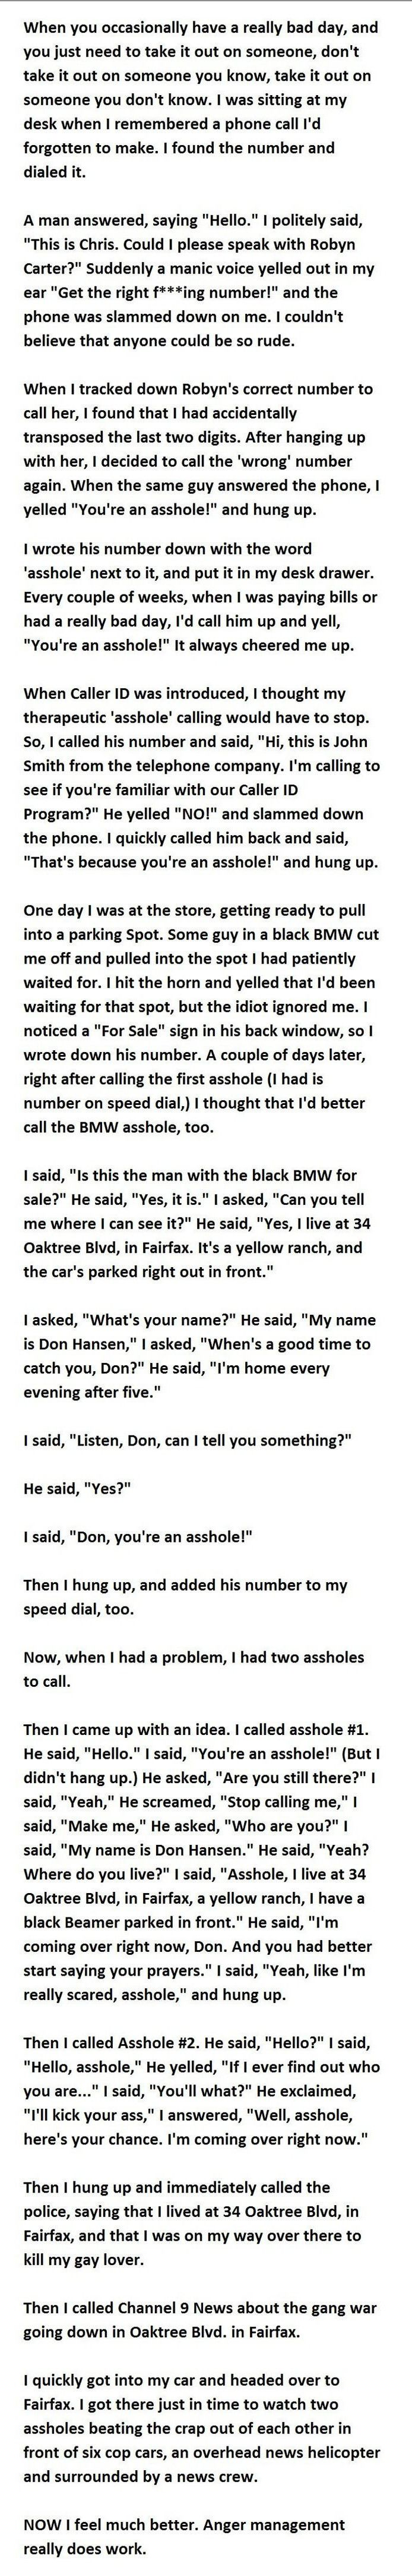 A little off-color, but worth reading.